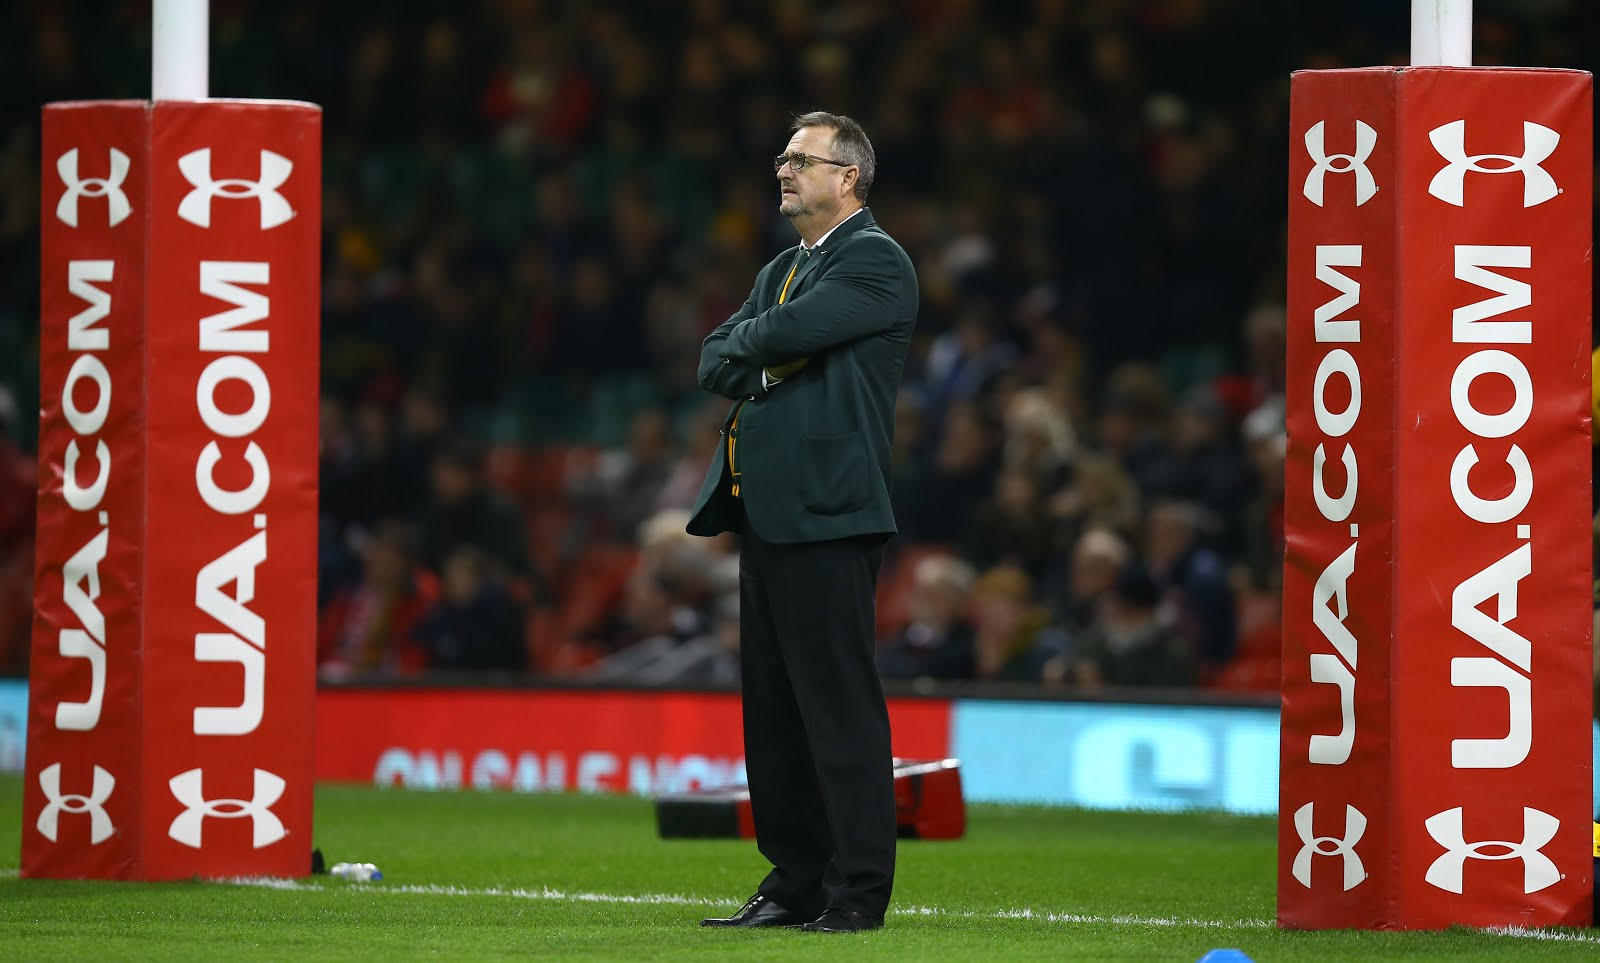 Swys de Bruin (consultant) and Emirates Lions head coach during the Castle Lager Outgoing Tour match between Wales and South Africa at Principality Stadium on November 24, 2018 in Cardiff, Wales